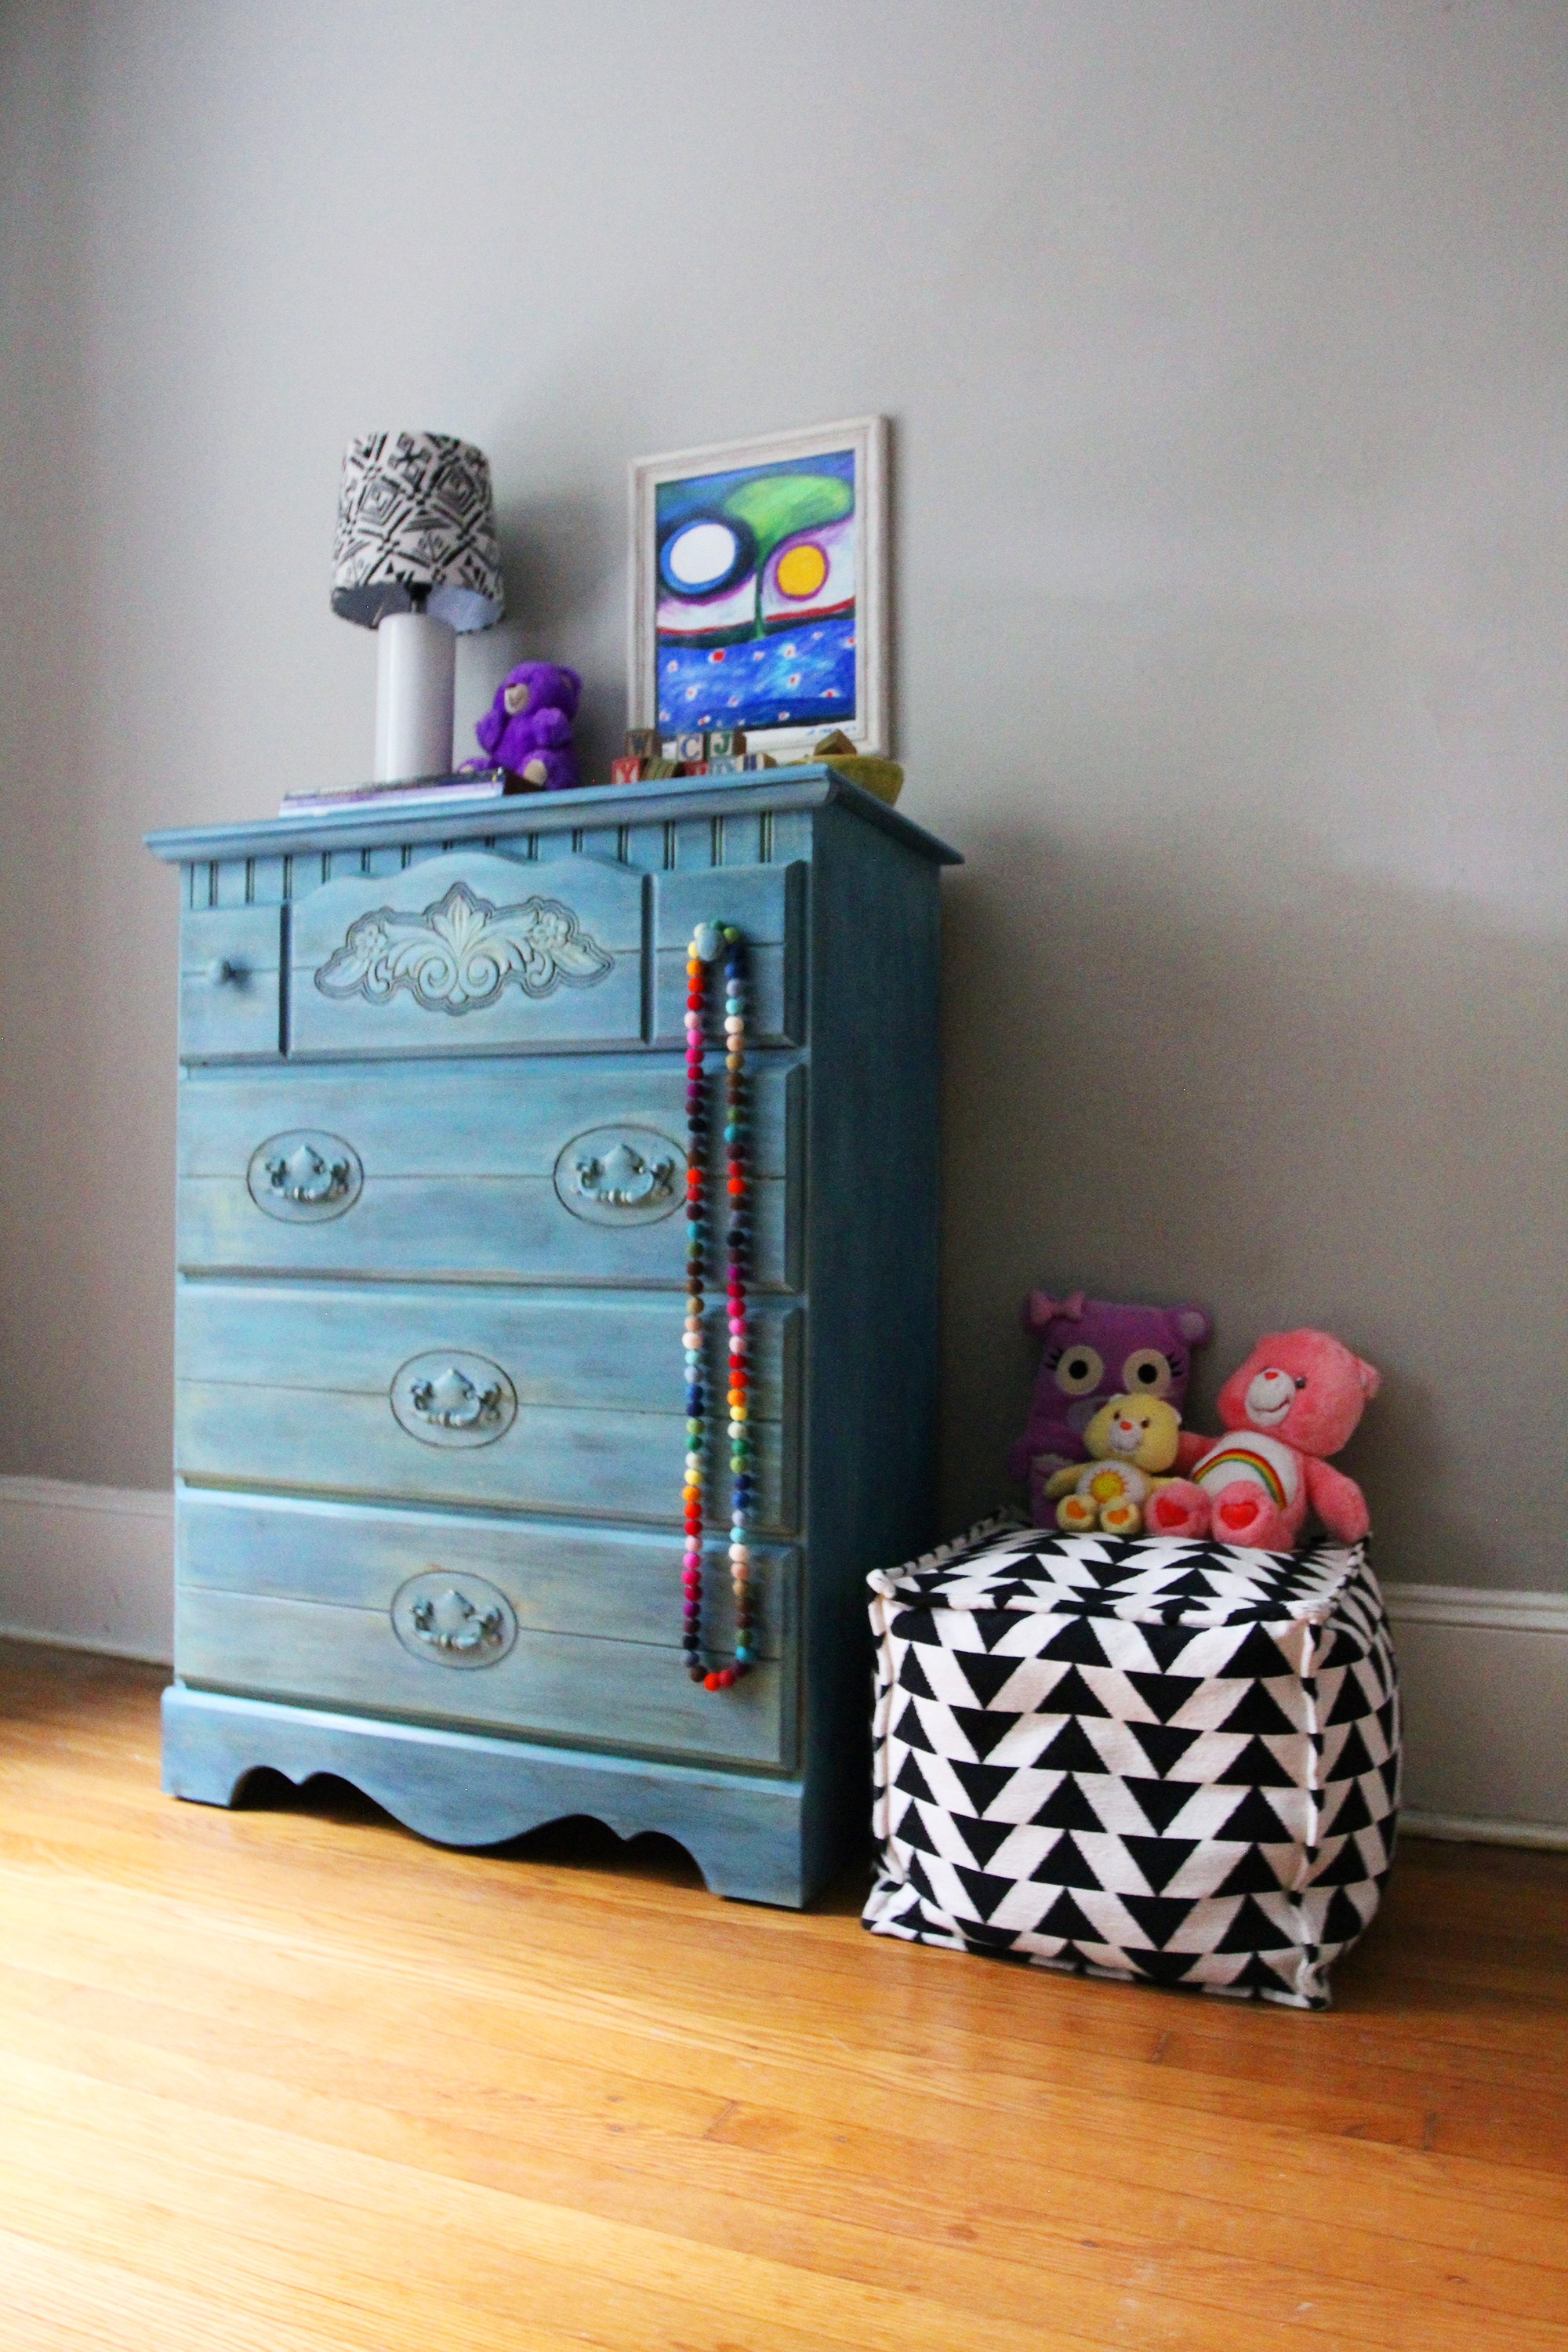 jo-torrijos-a-simpler-design-atlanta-painted-furniture-turquoise-green-layered-painted-dresser-6.jpg